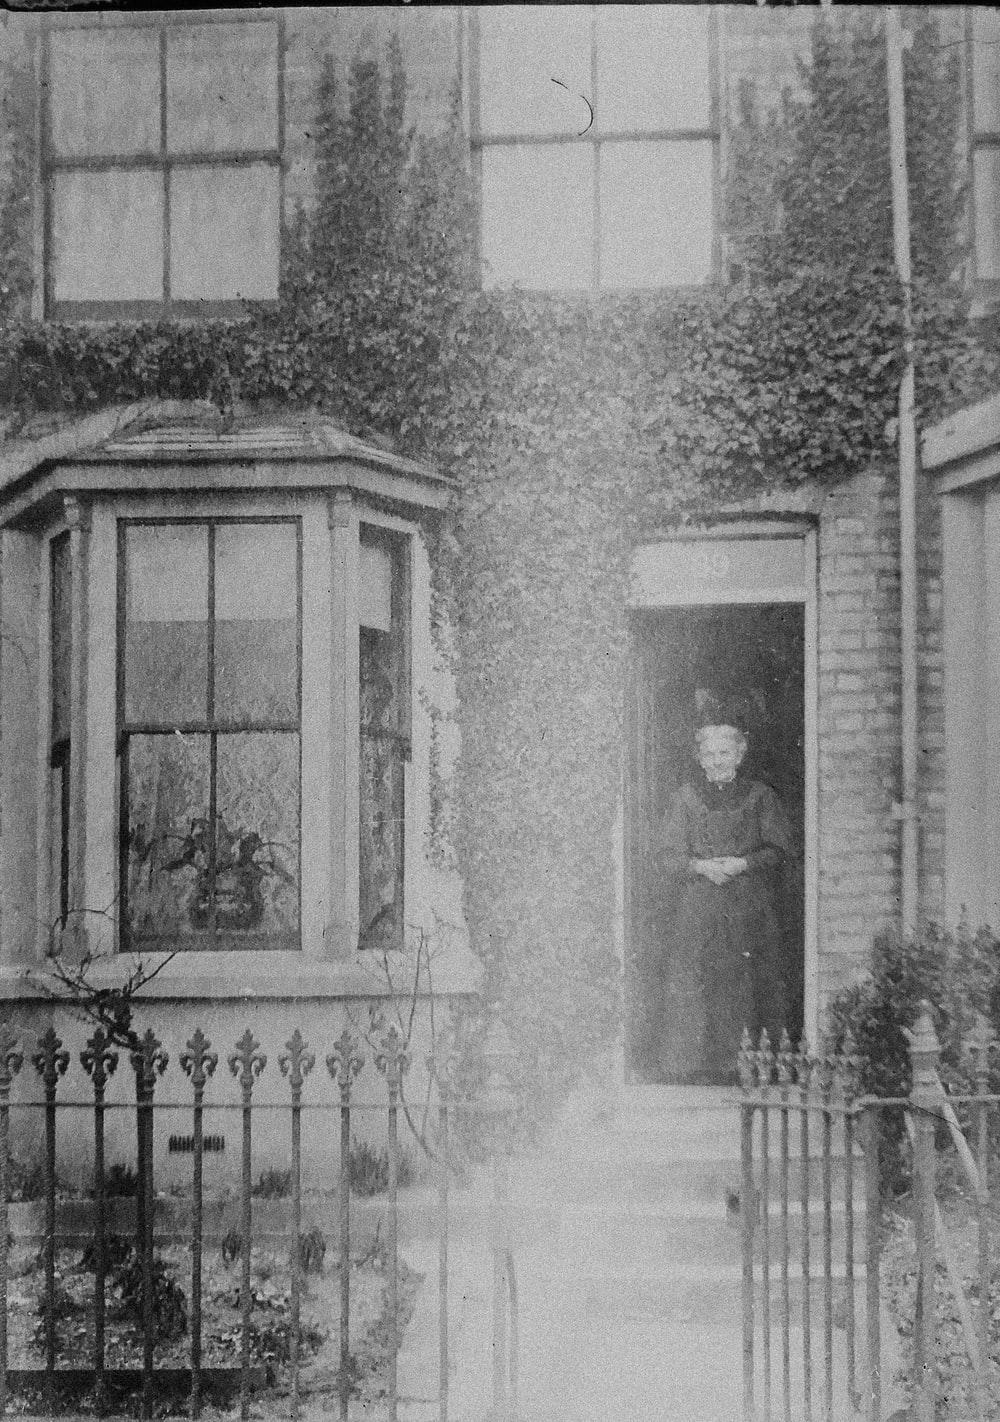 grayscale photo of 2 women standing in front of window